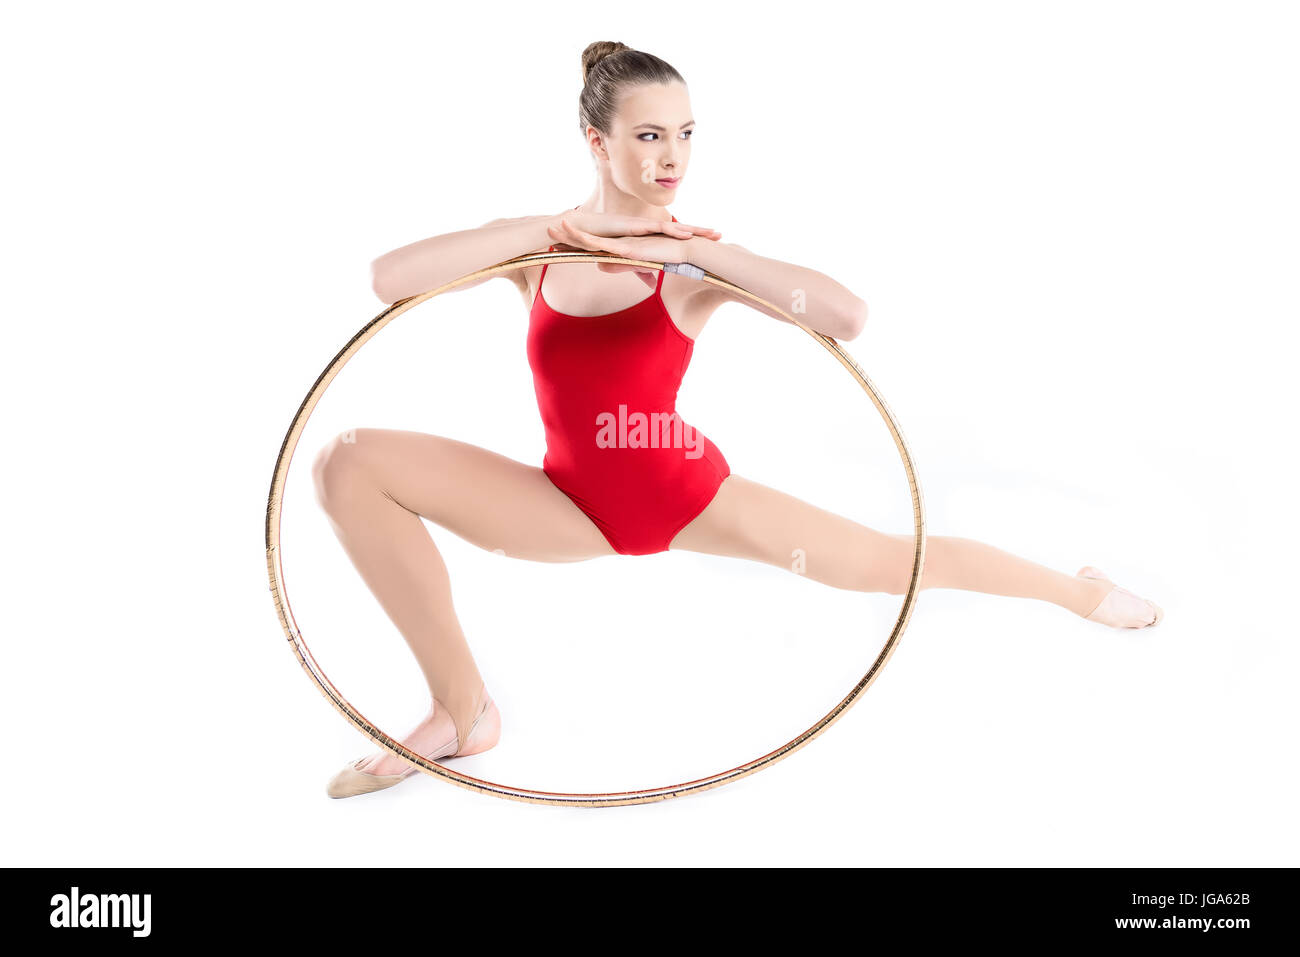 Mettre en place une formation gymnastique rythmique avec hoop isolated on  white Photo Stock 635f237daba